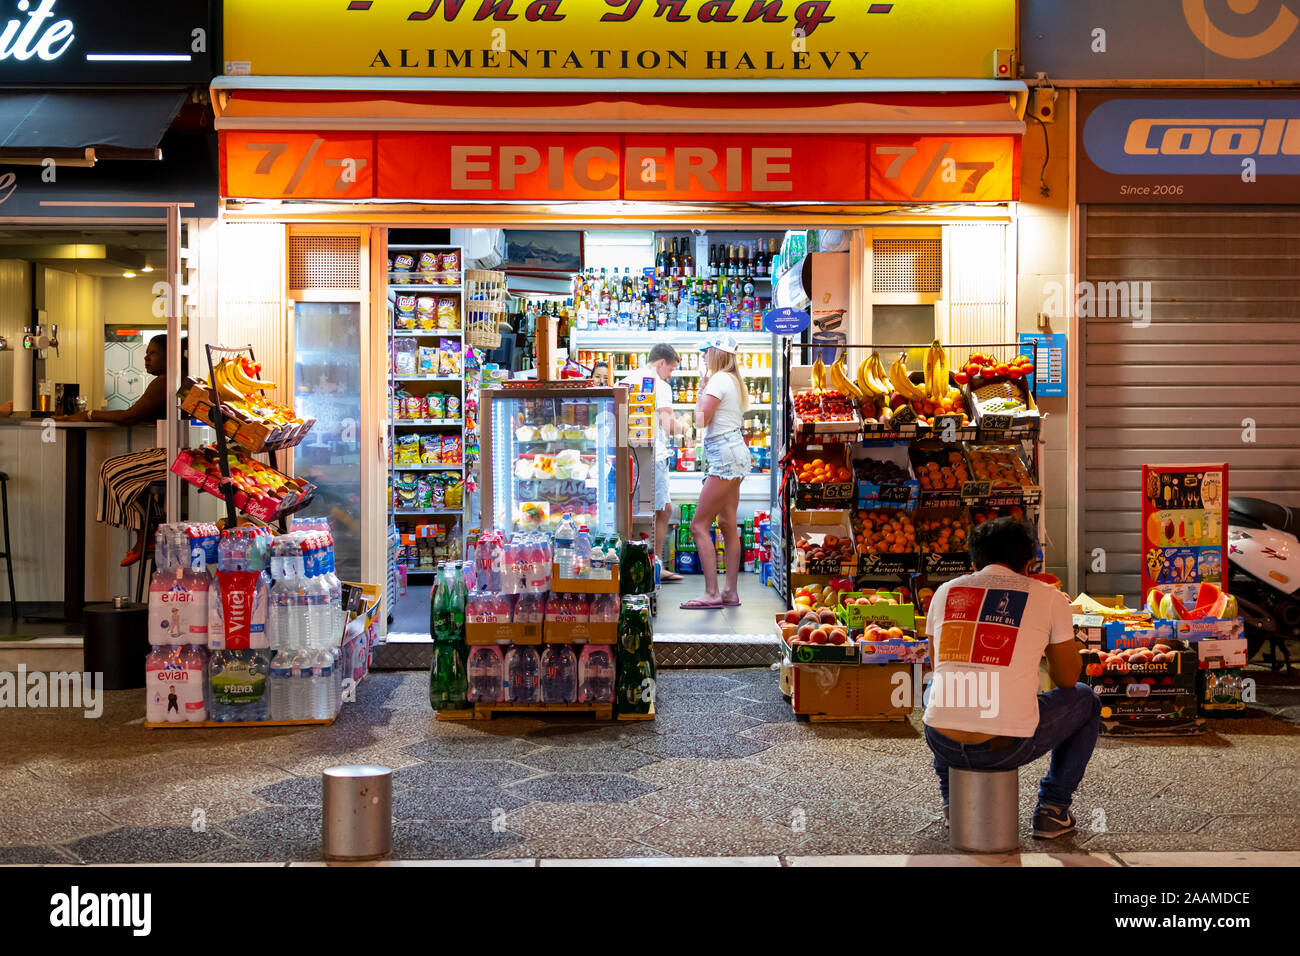 A young couple visits a colorful, brightly illuminated epicerie or grocery store late night in the tourist section of Nice, France Stock Photo